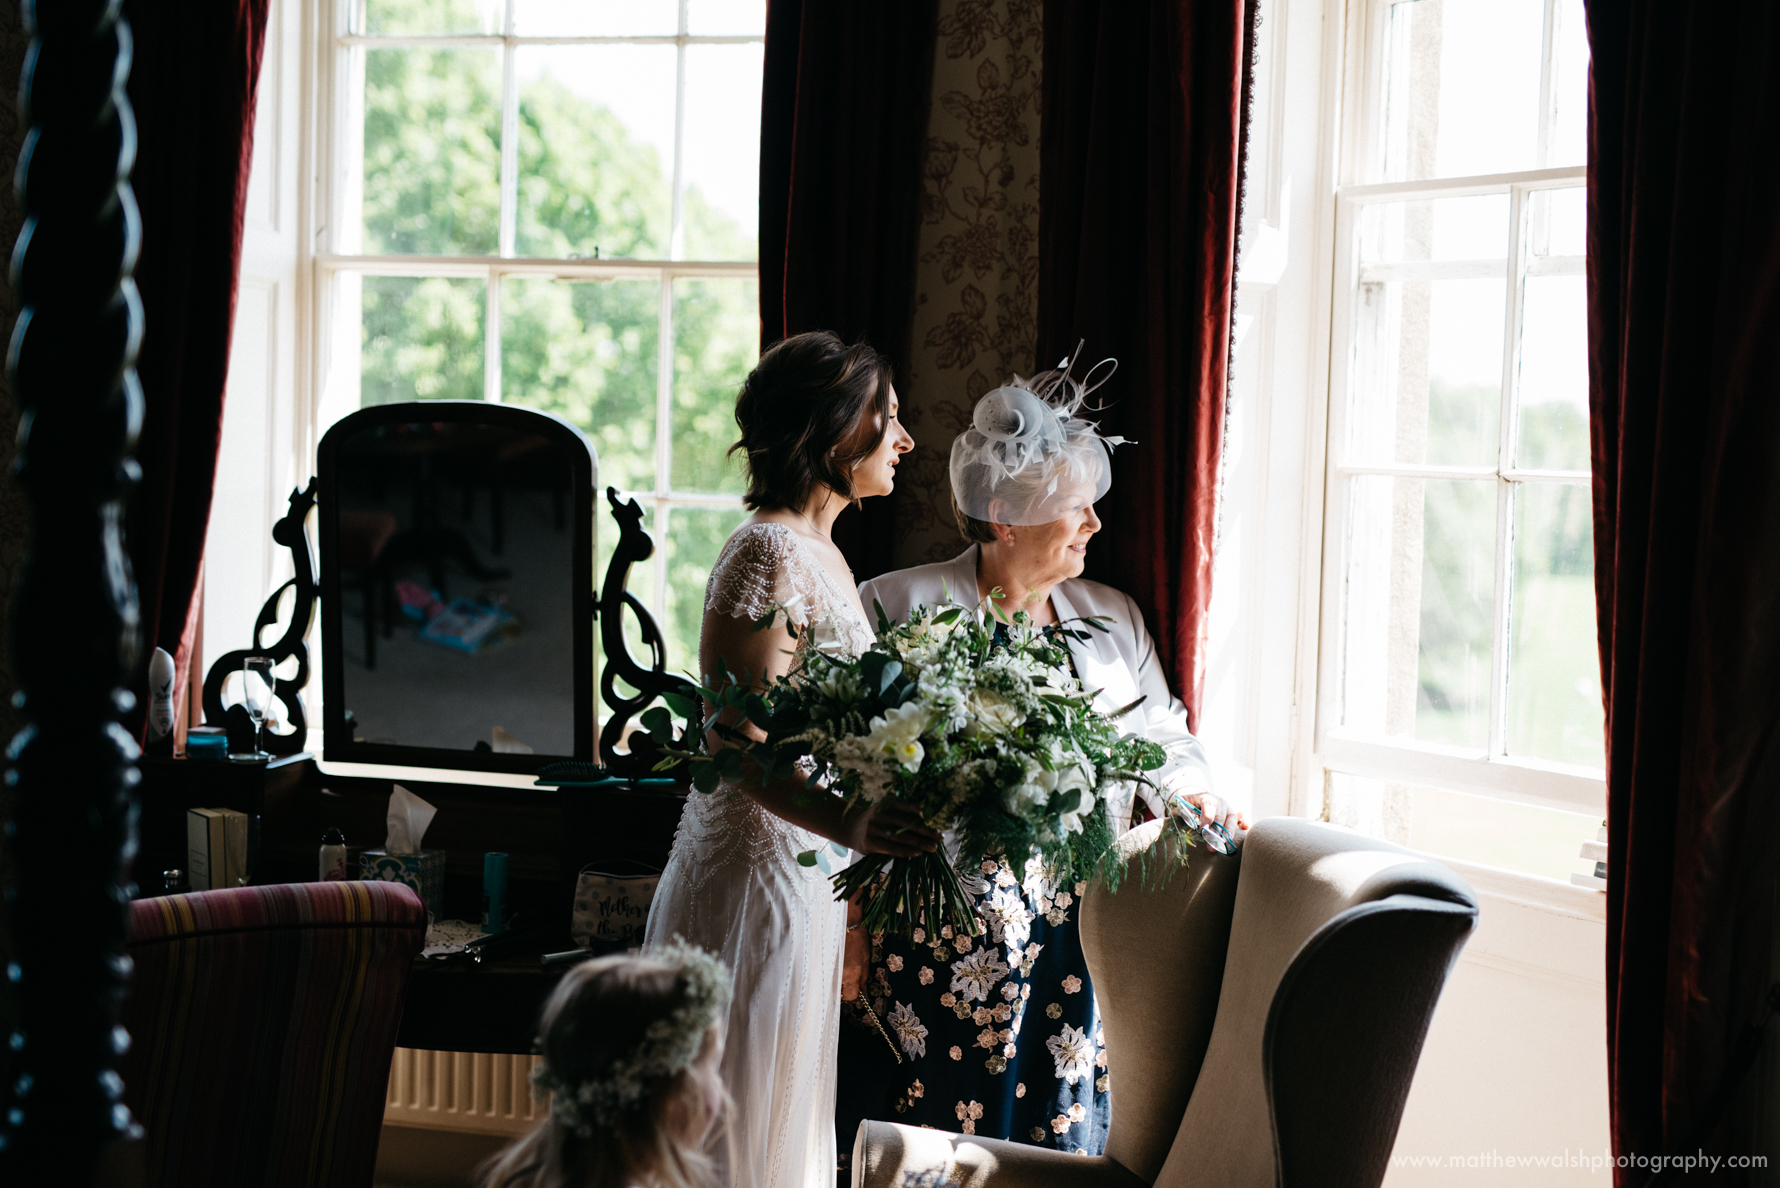 Bride and mum look out of the natural light window to see the guests arriving